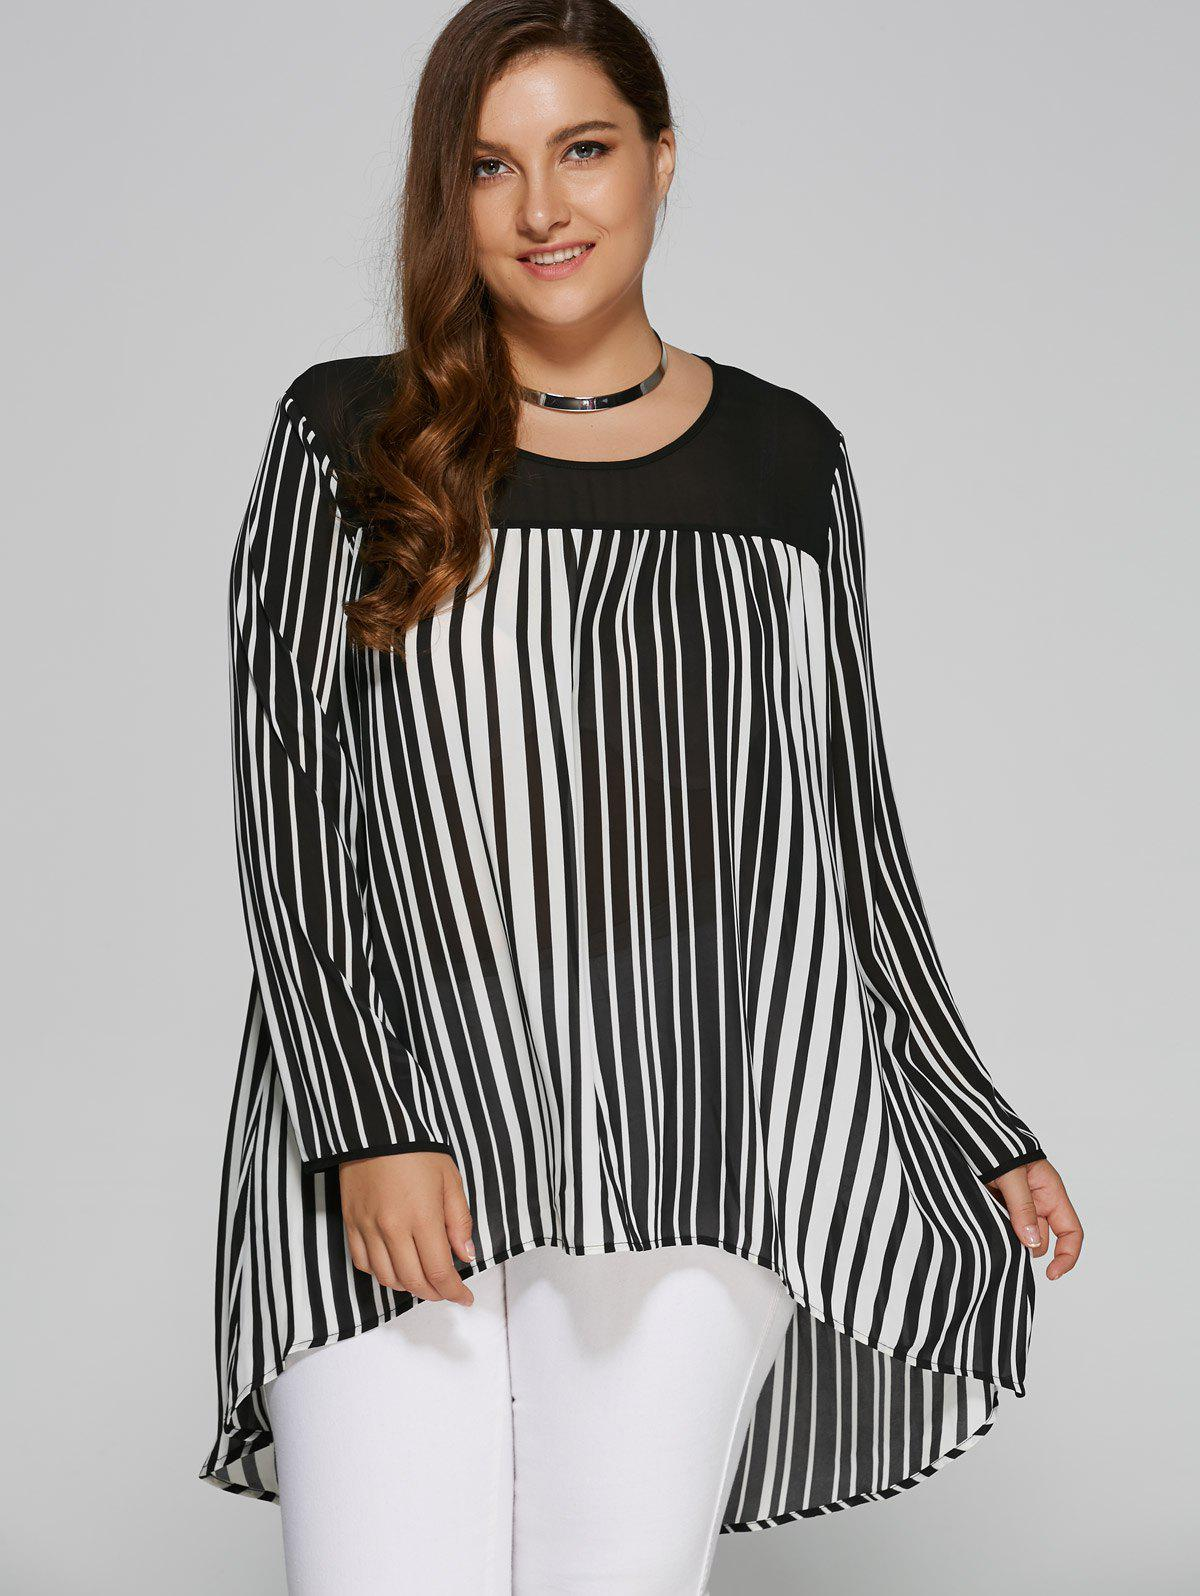 Plus Size High Low Hem Striped BlouseWOMEN<br><br>Size: 3XL; Color: WHITE AND BLACK; Material: Polyester; Shirt Length: Long; Sleeve Length: Full; Collar: Scoop Neck; Style: Casual; Season: Fall,Spring,Summer; Pattern Type: Striped; Weight: 0.380kg; Package Contents: 1 x Blouse;